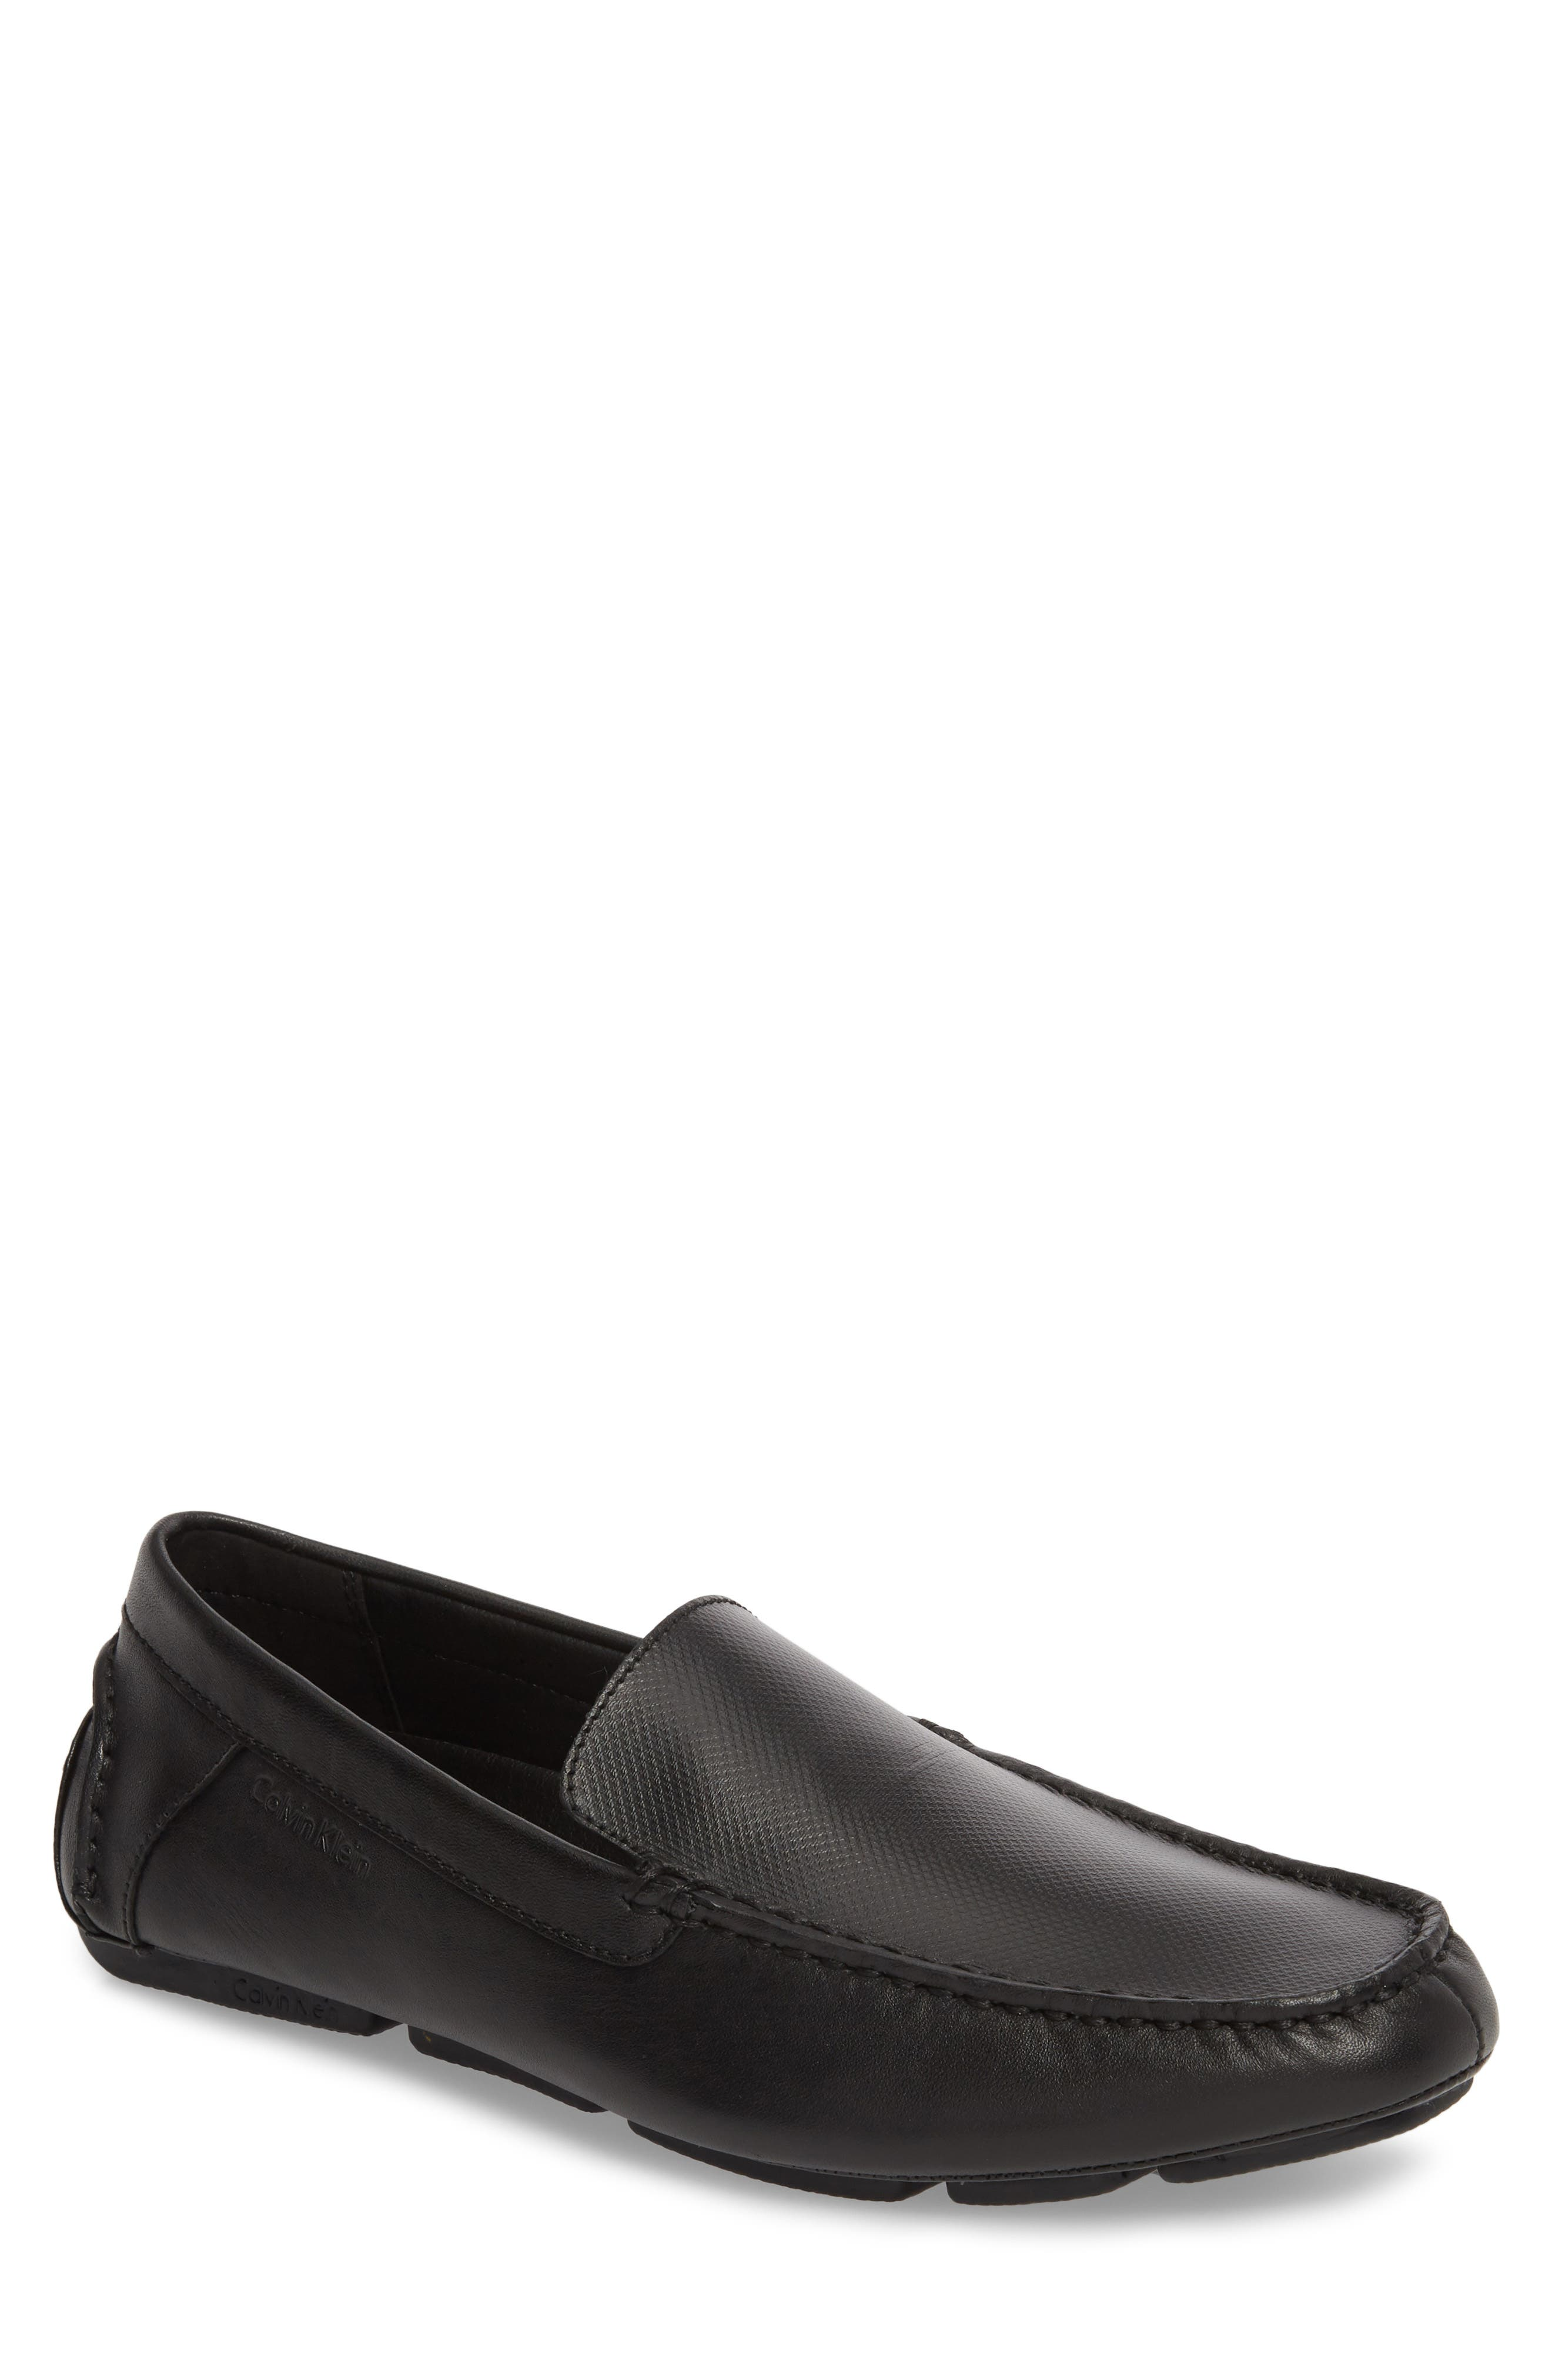 Miguel Textured Driving Loafer, Main, color, 001